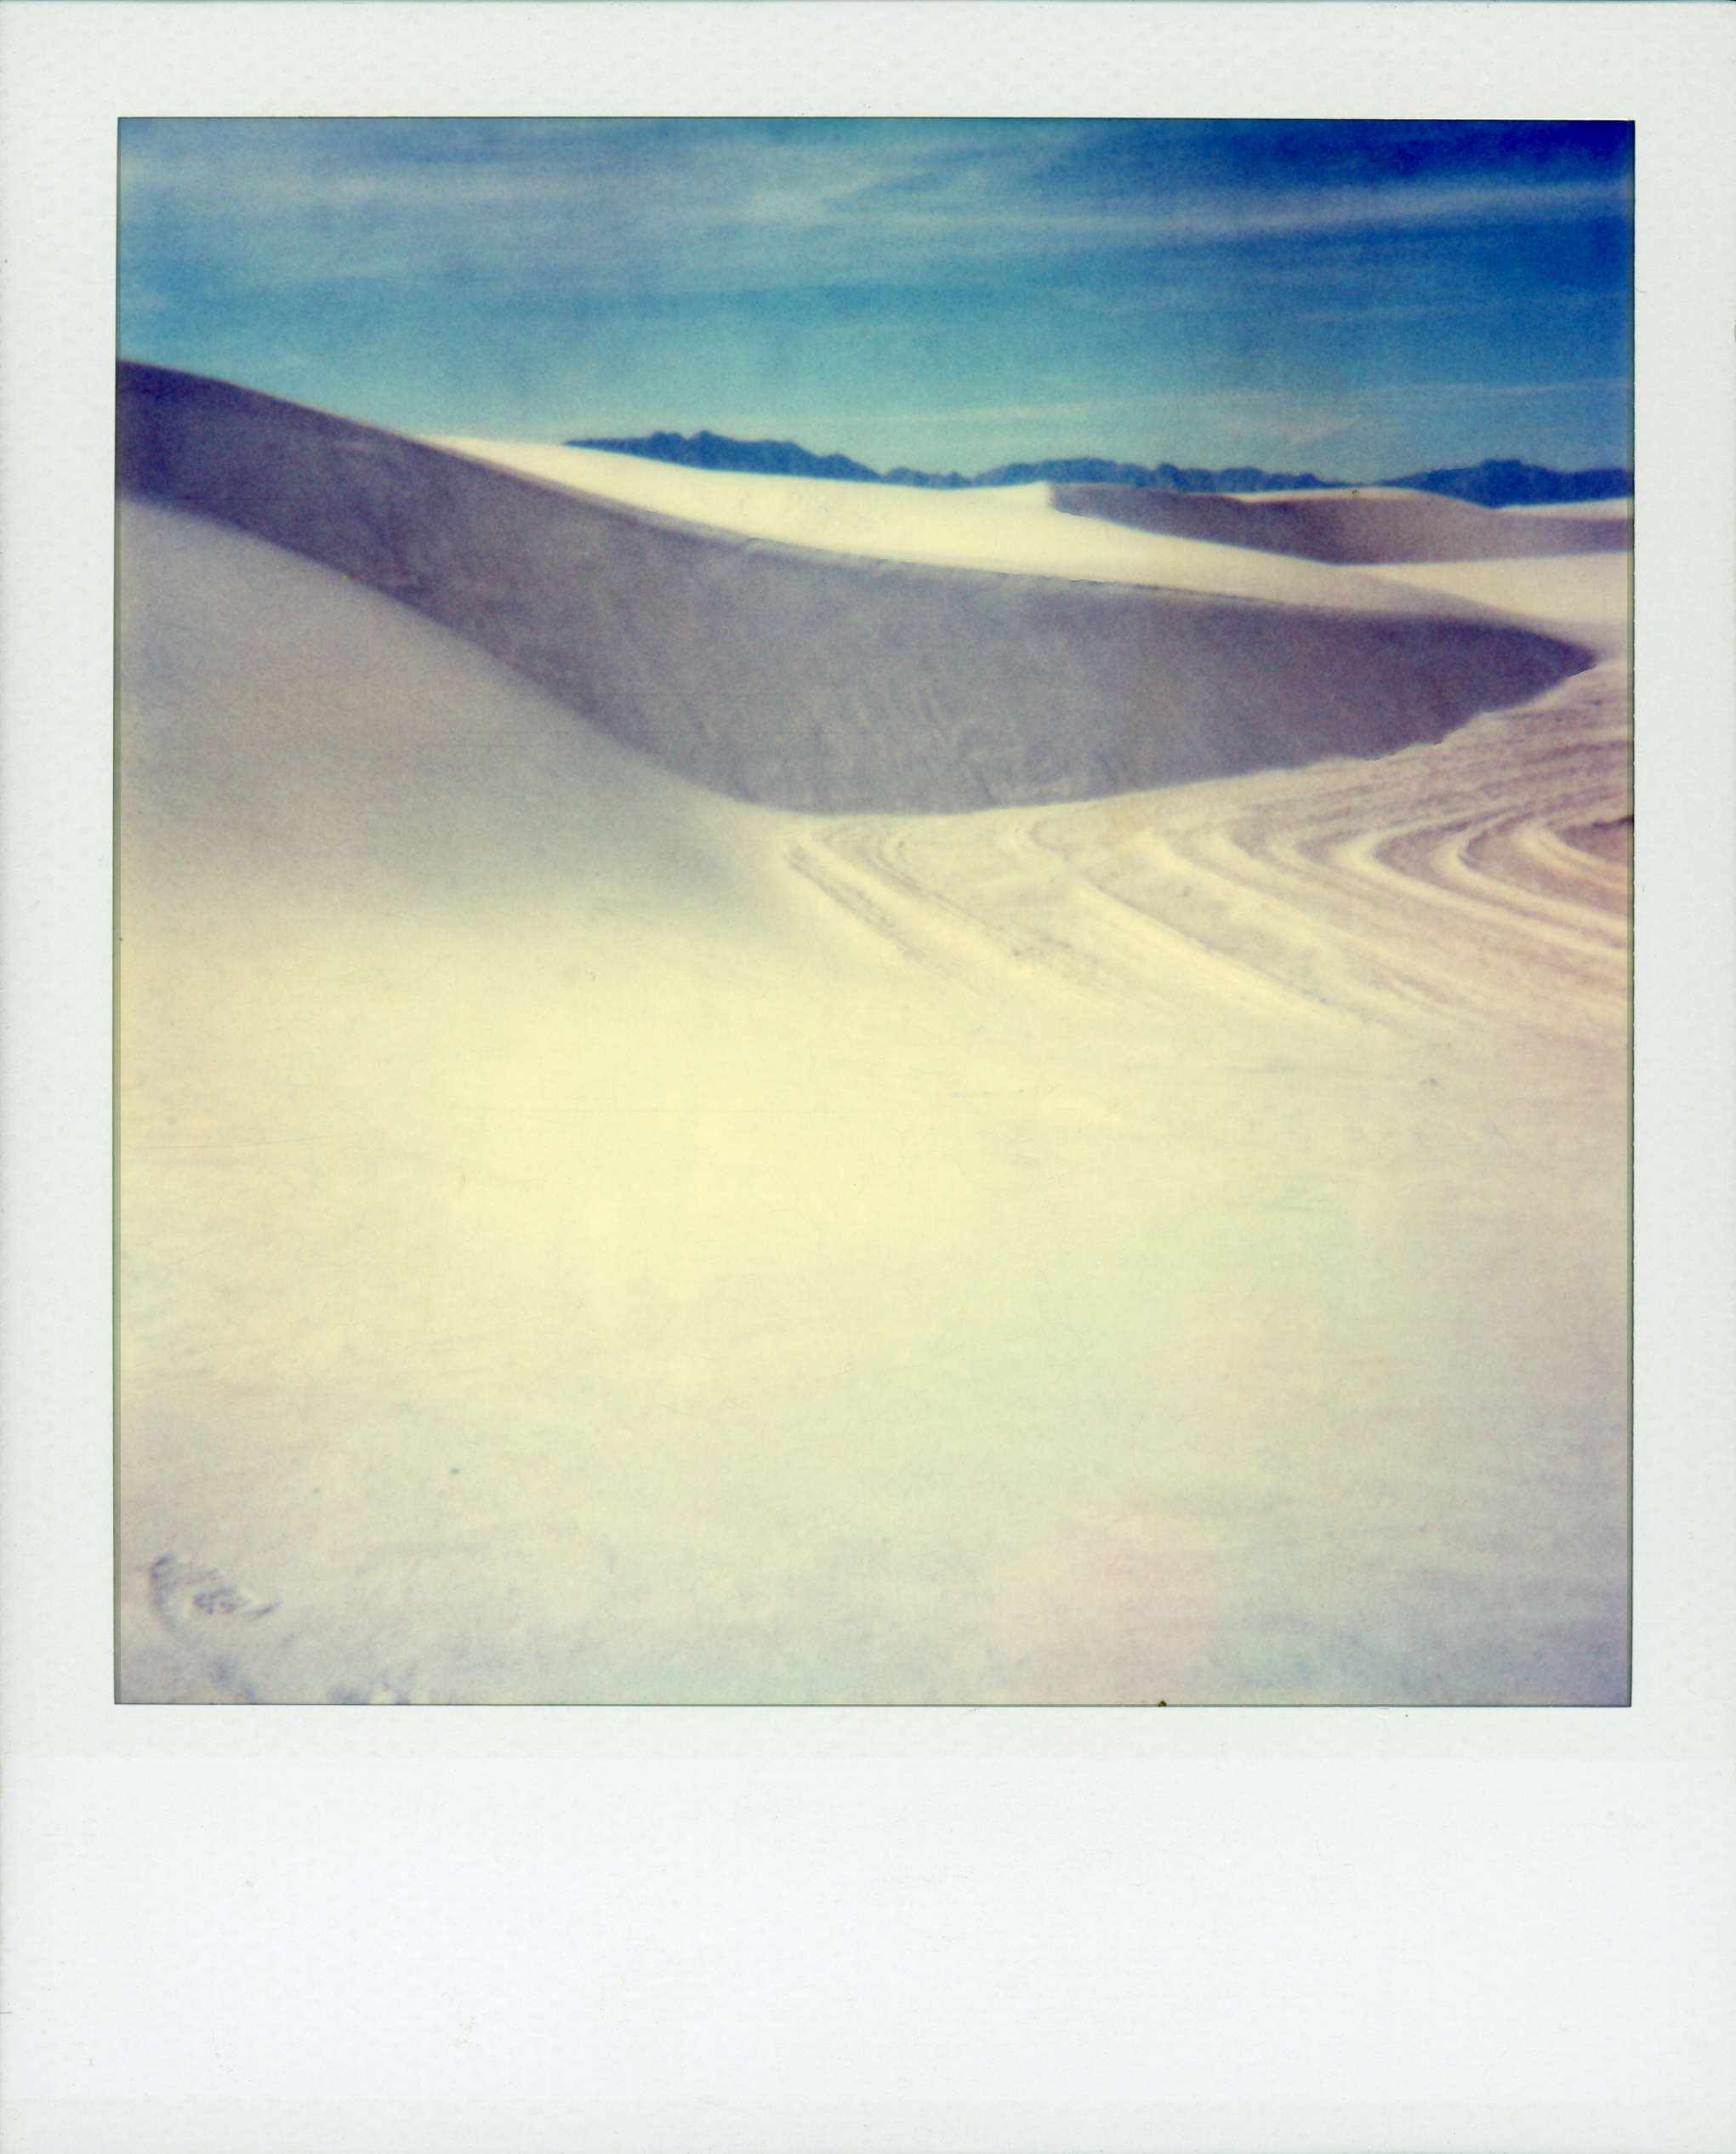 polaroid white sands004.jpg